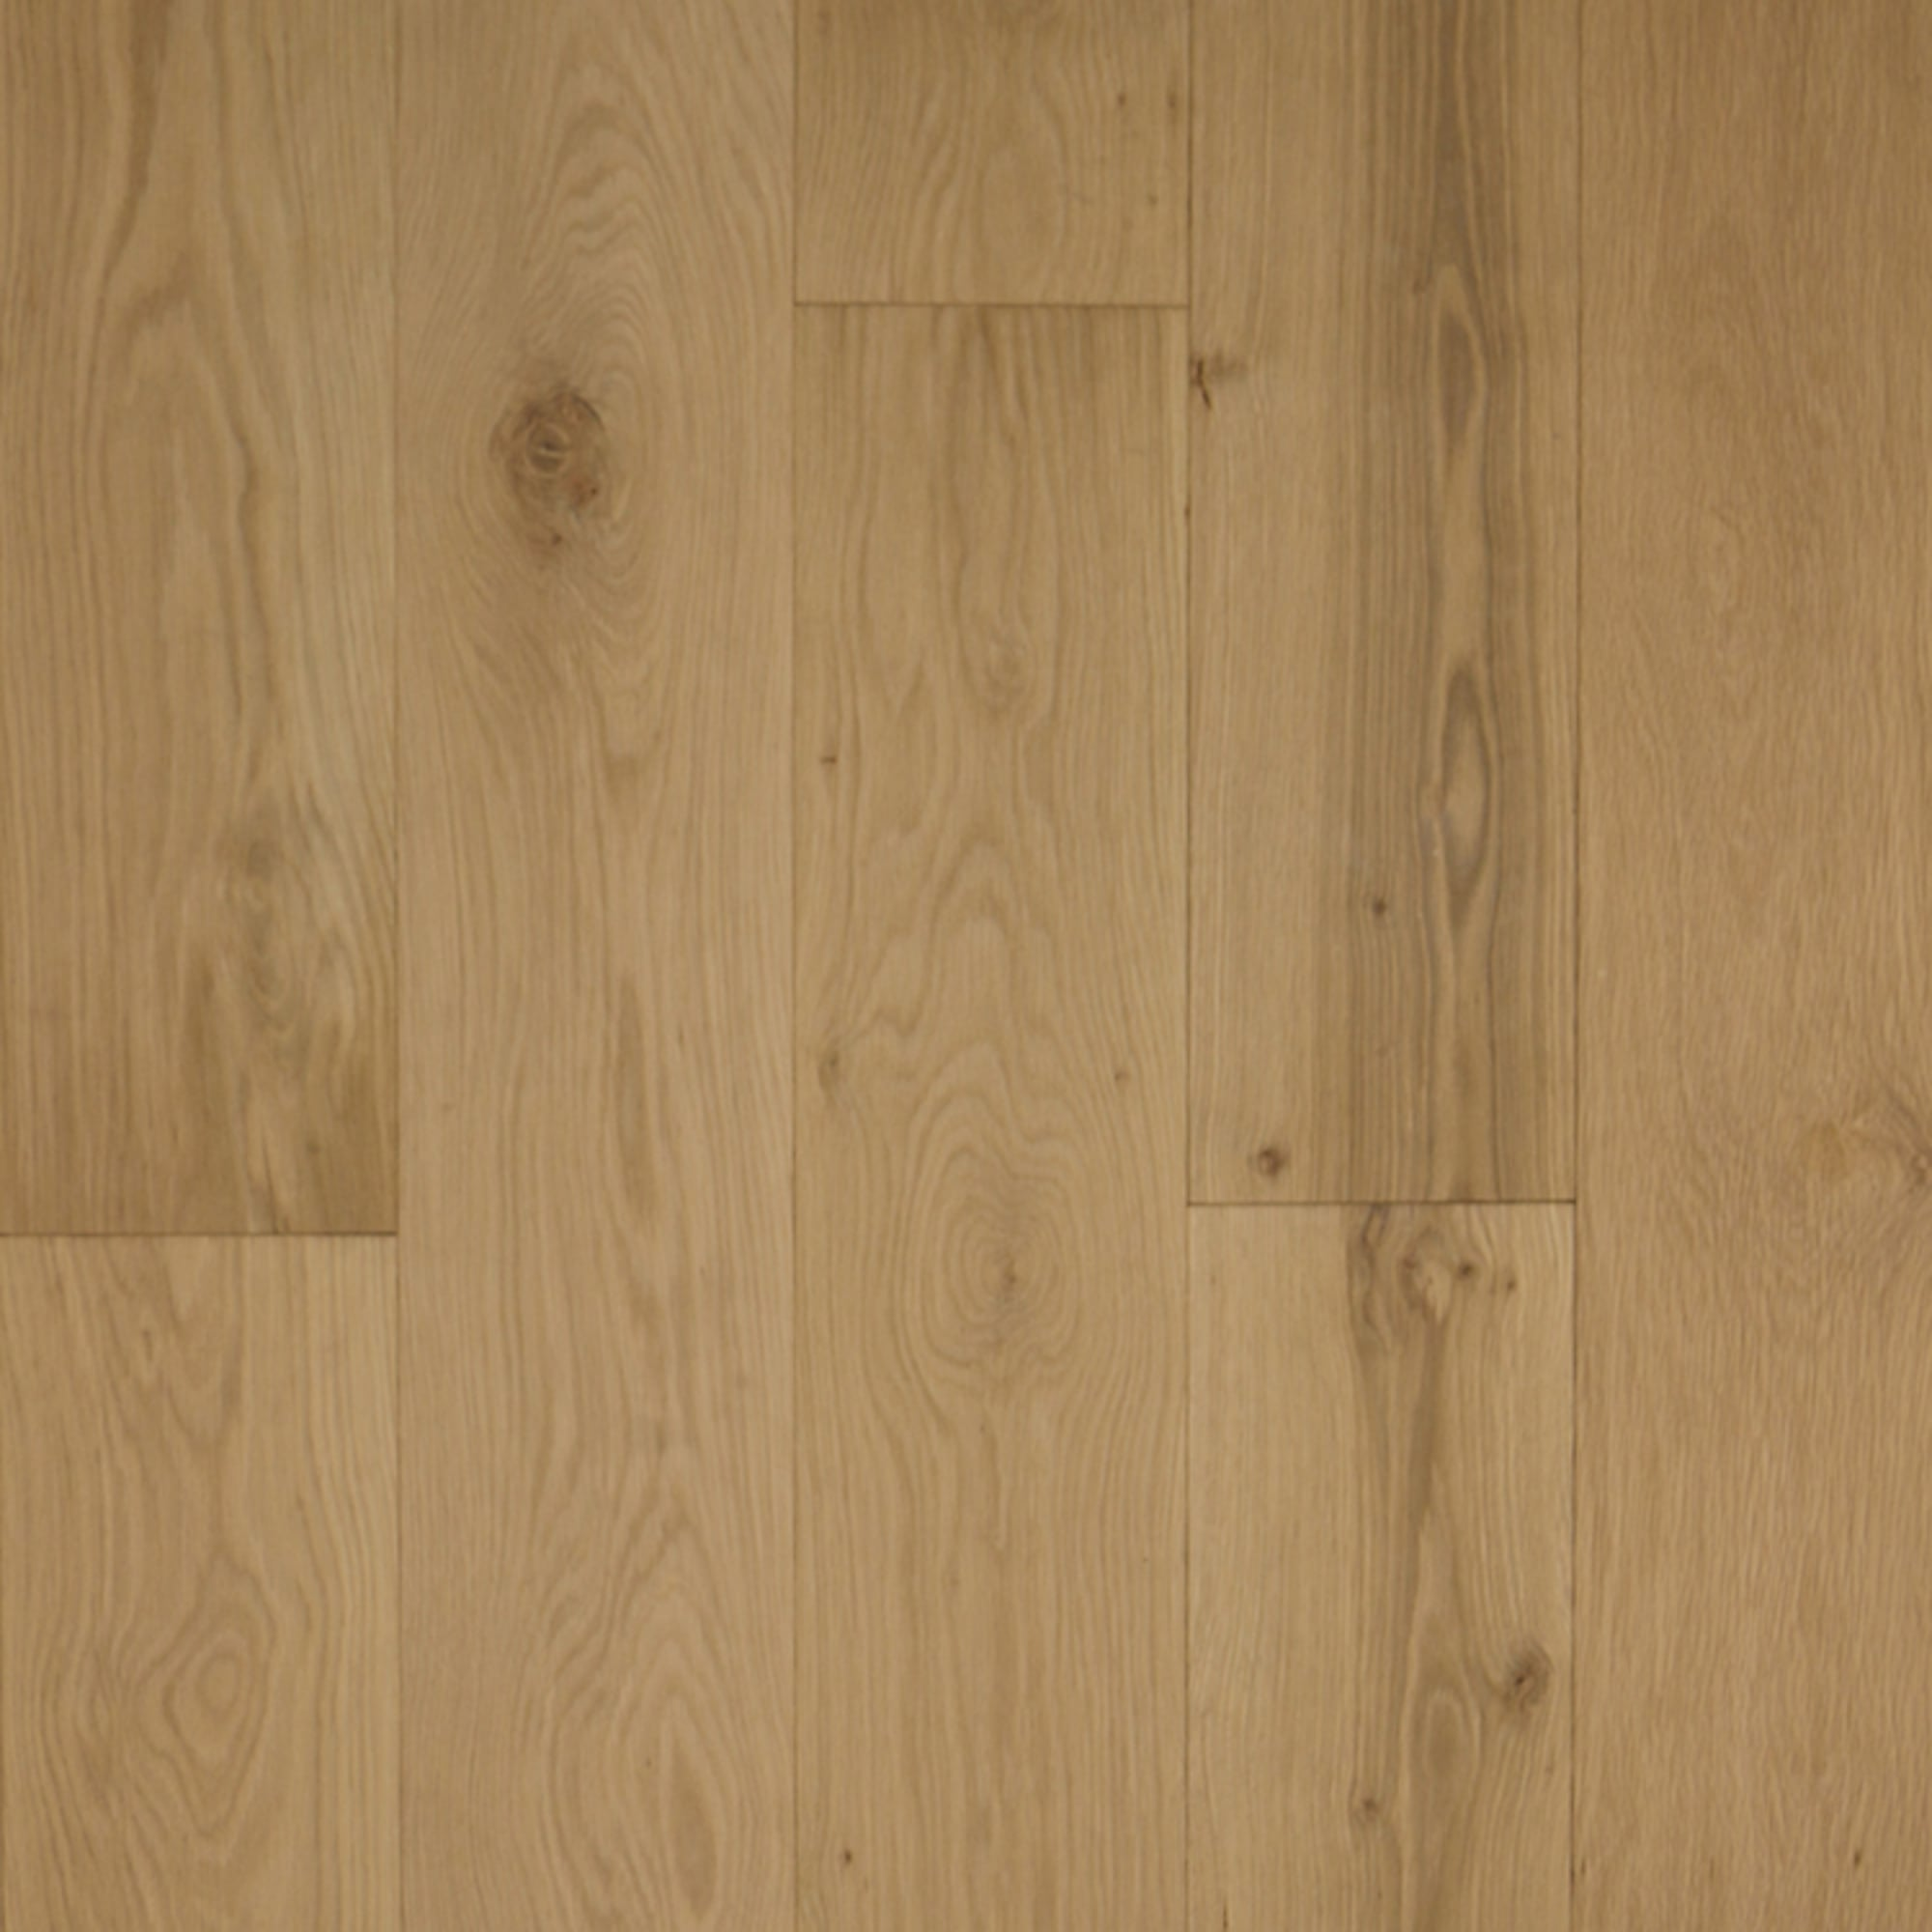 Wood flooring 14x189mm invisible oil hppc engineered oak for Engineered oak flooring